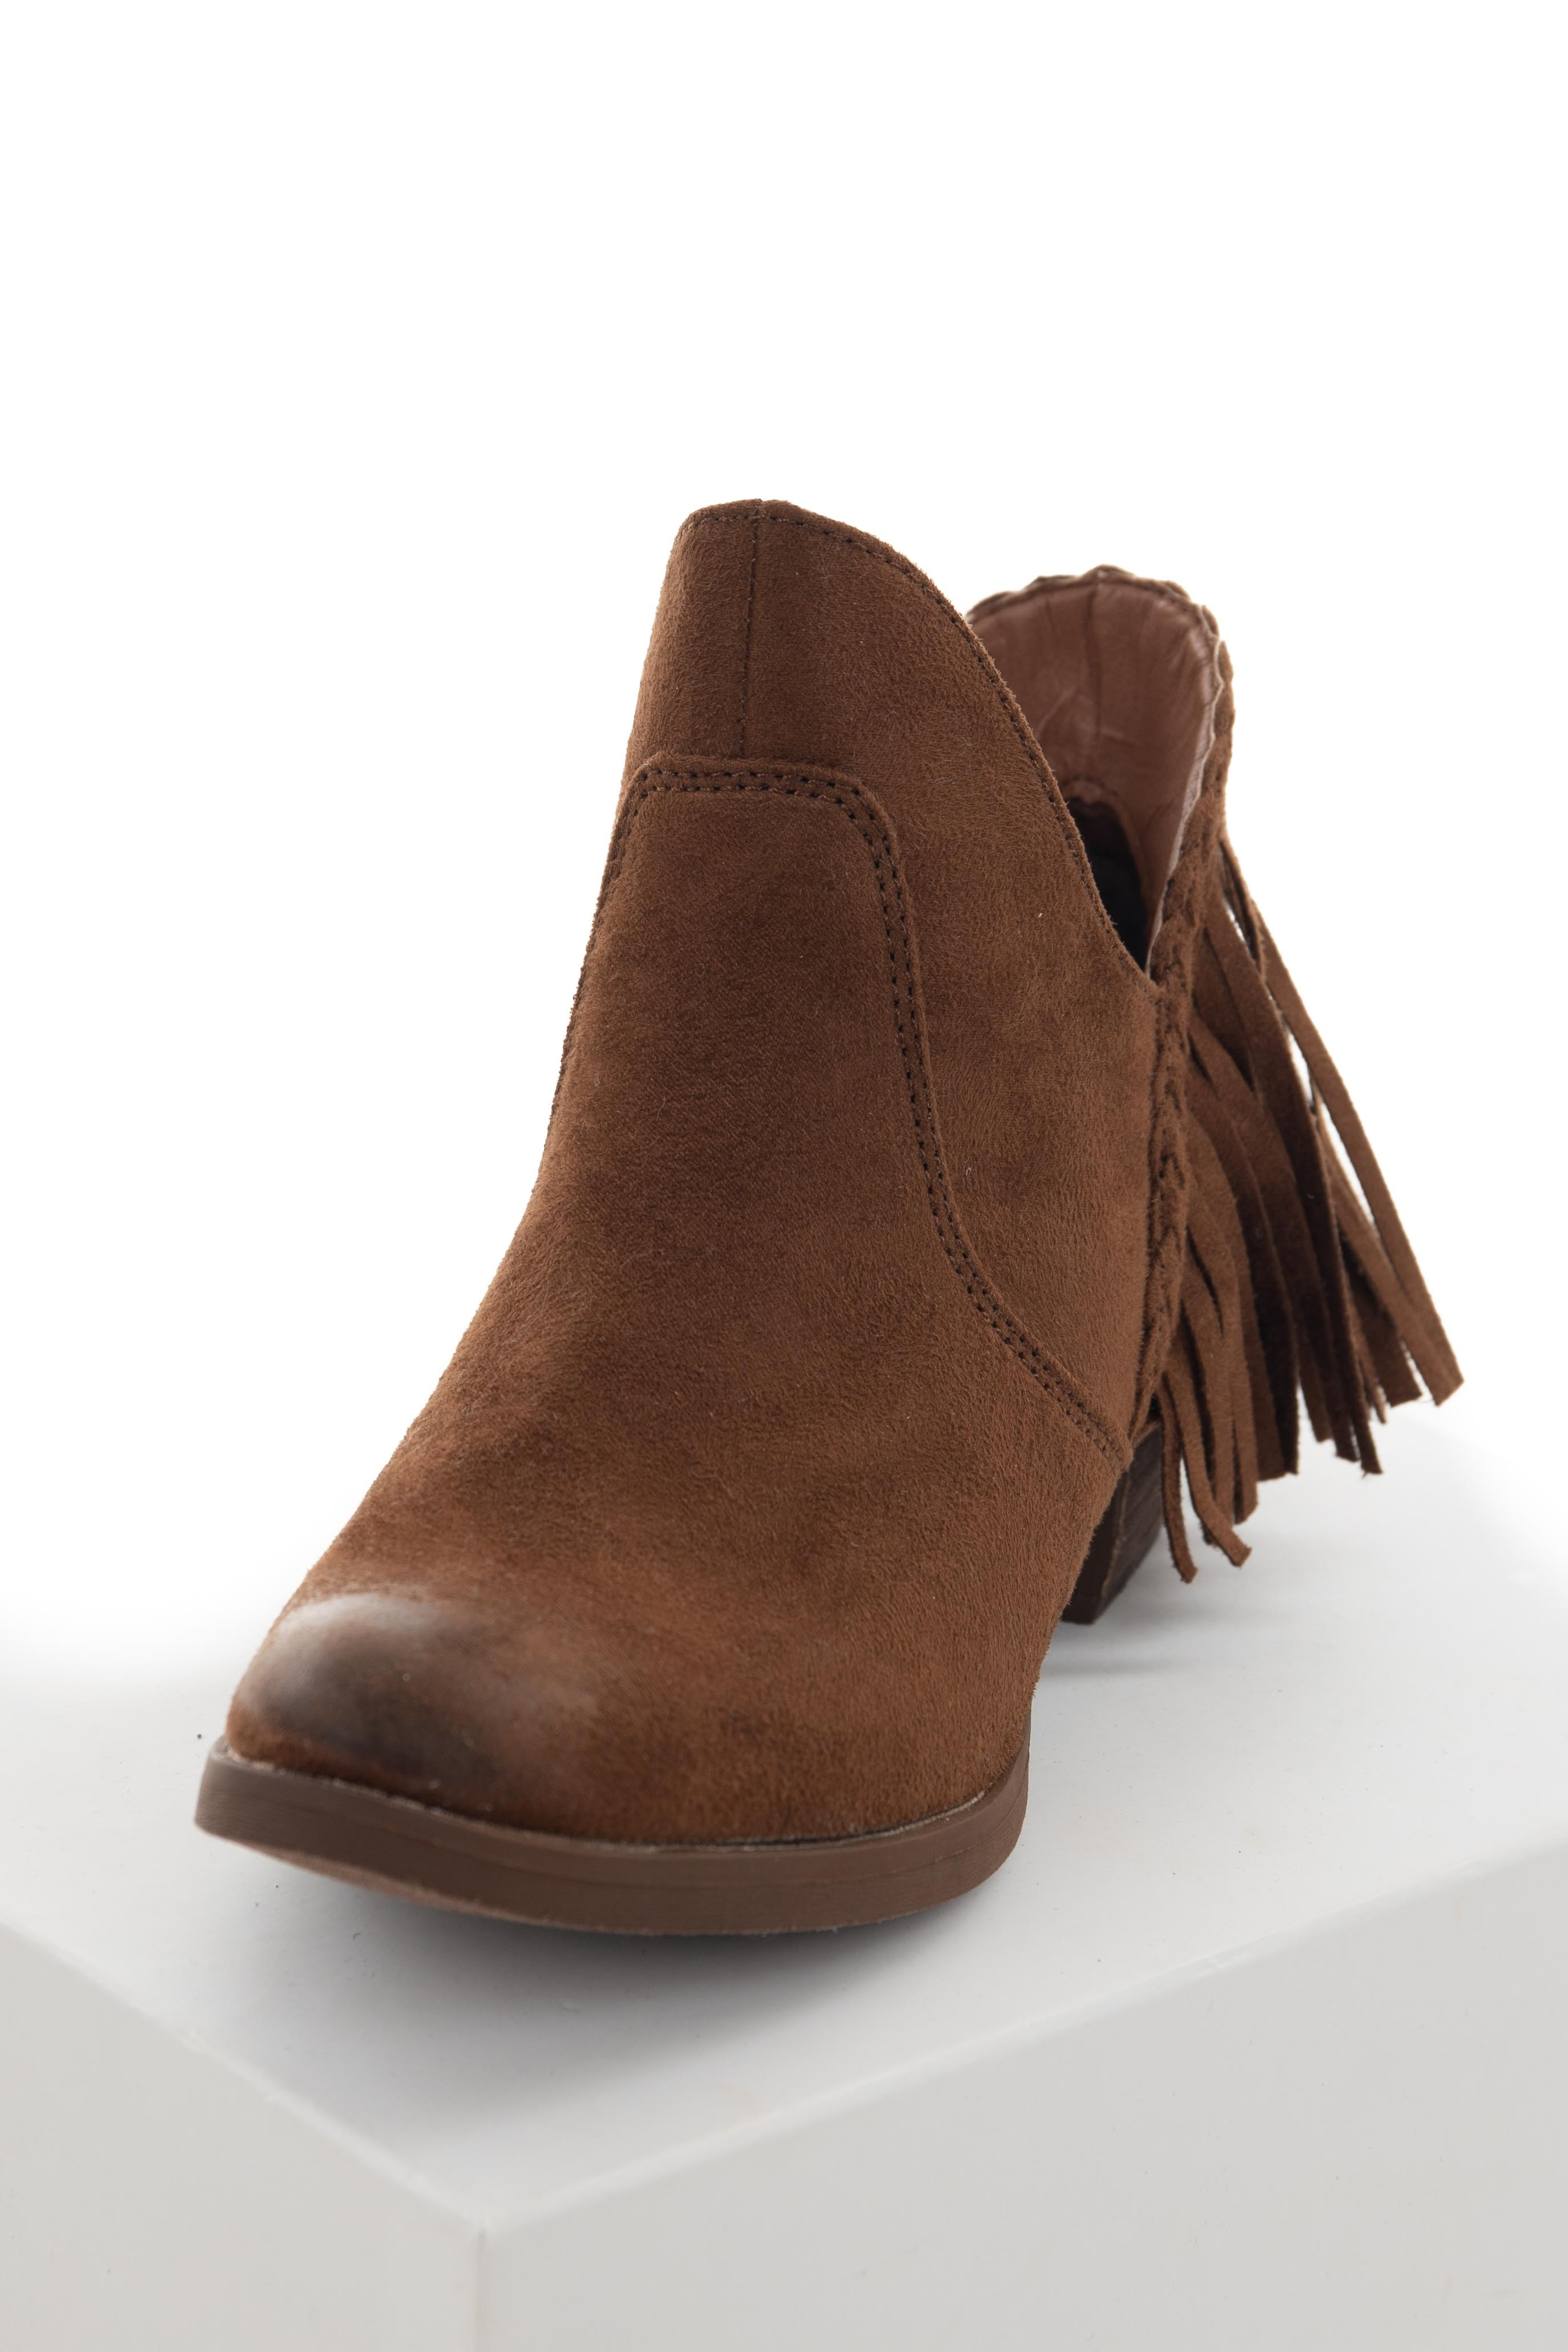 Deep Sepia Plunging Ankle Booties with Fringe